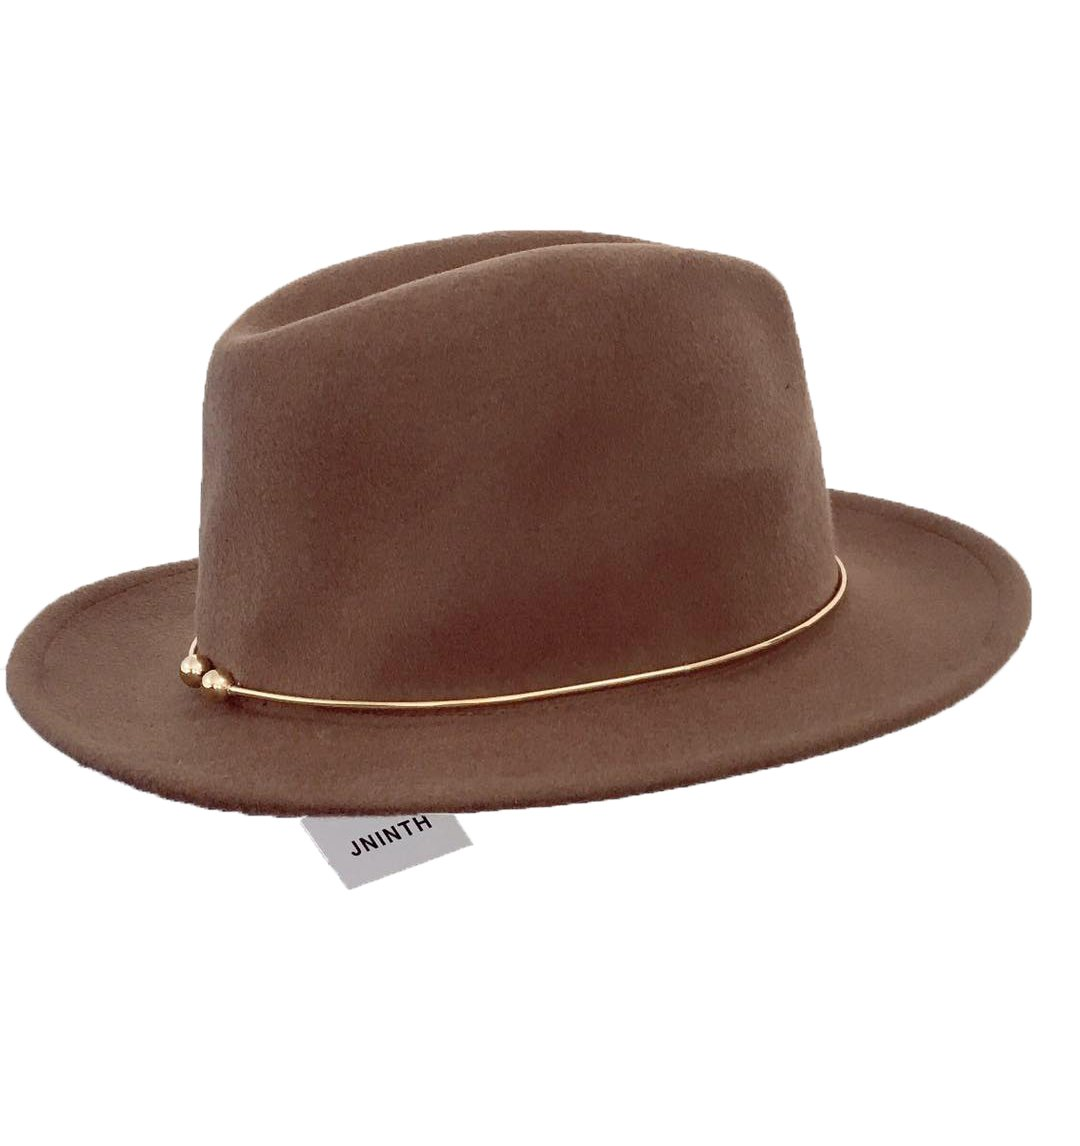 JNINTH Trendy 100% Wool Felt Fedora Hats Wide Brim Comfortable Adjustable Cap with The Unique Metal Circle for Women (Camel)